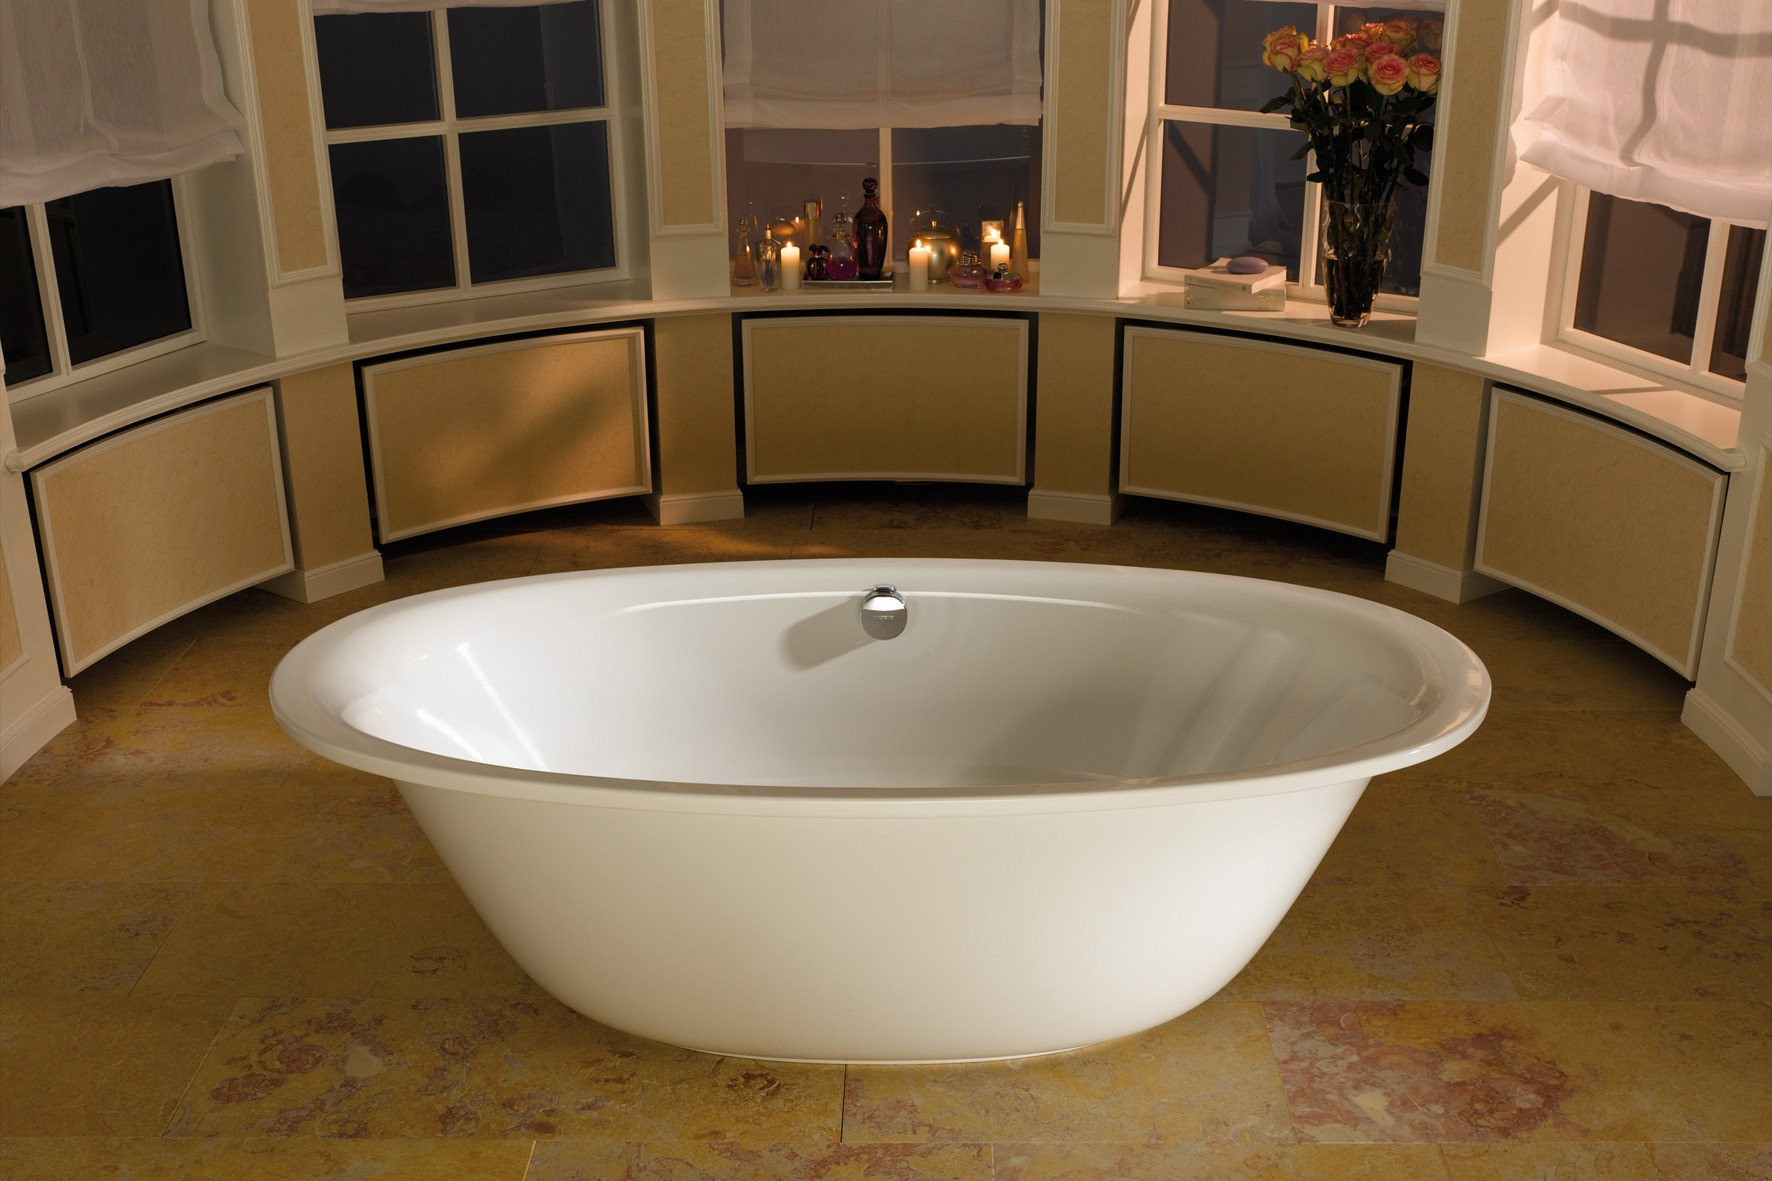 Types of acrylic bathtubs. On supporting structures. How to choose ...